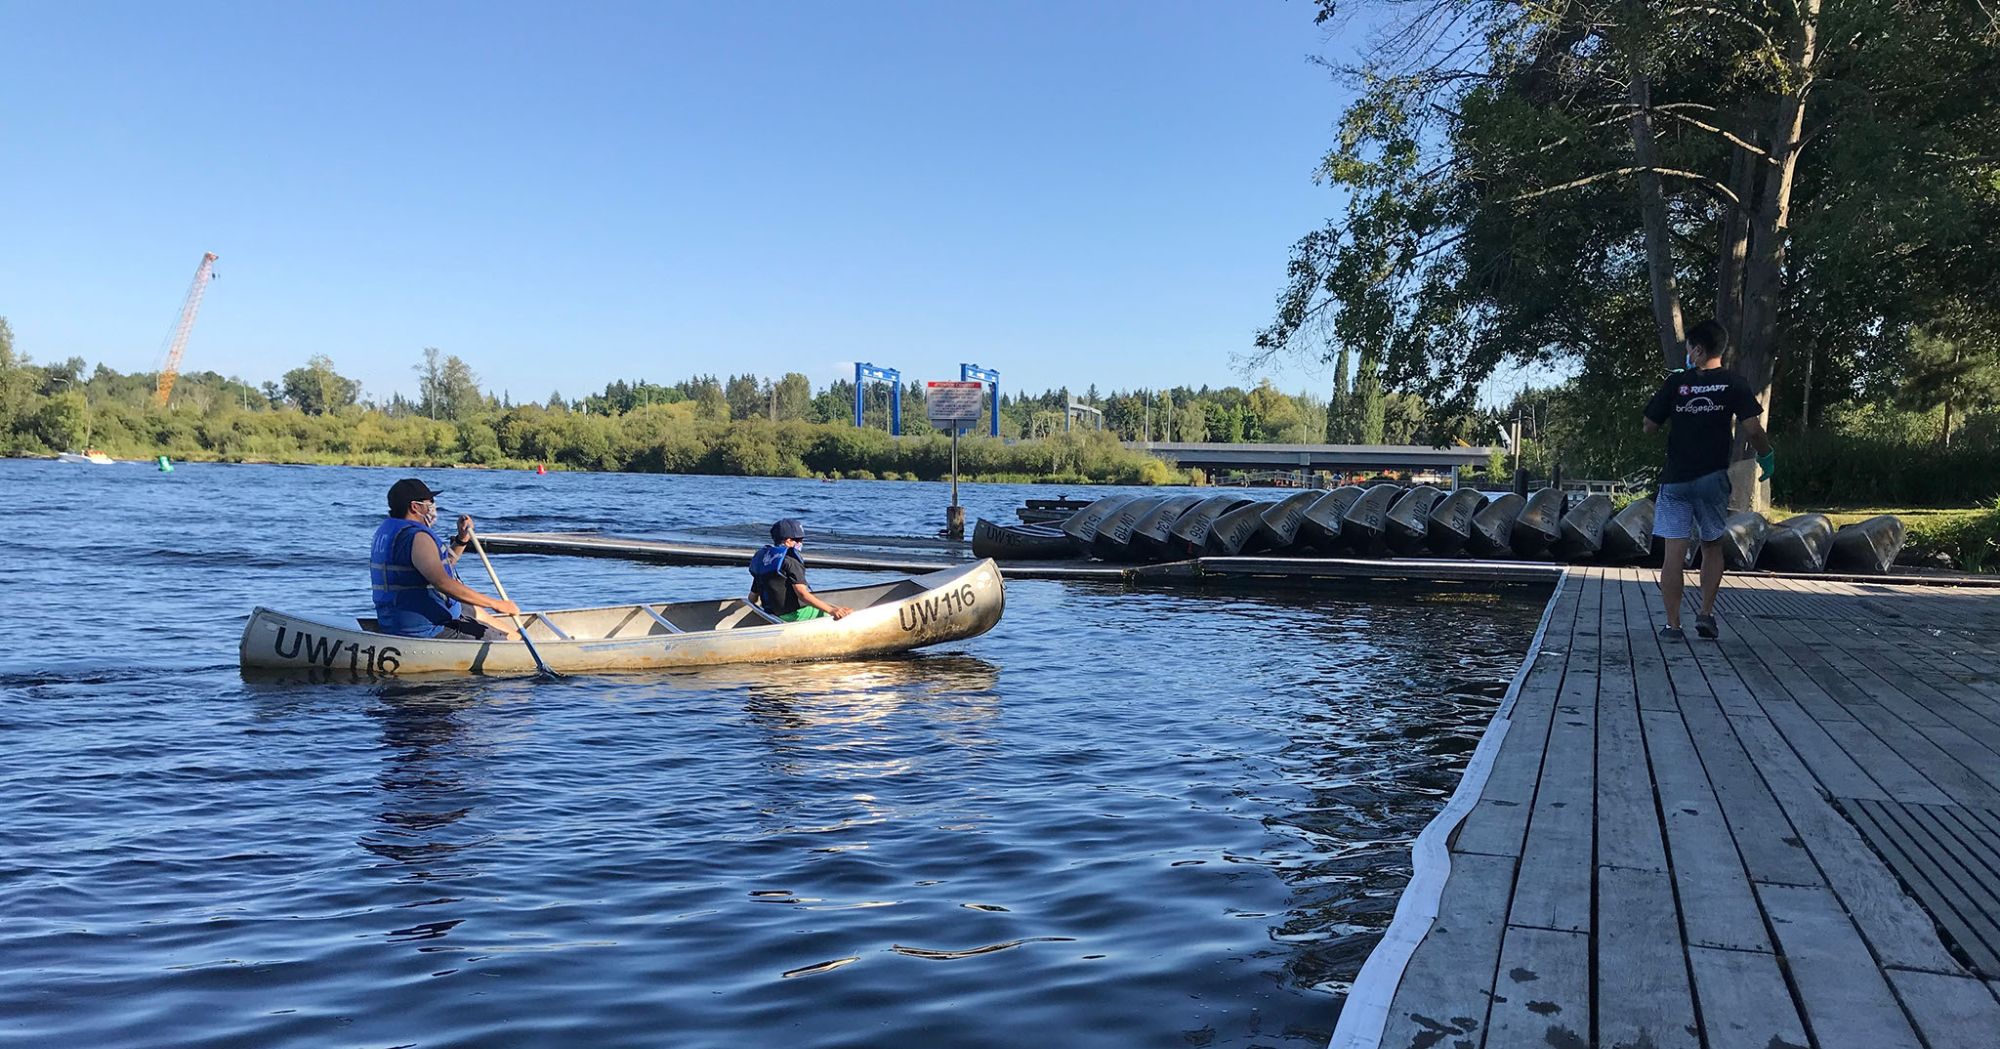 Masked participants enjoy time out on the water in a canoe rented from the Waterfront Activities Center.